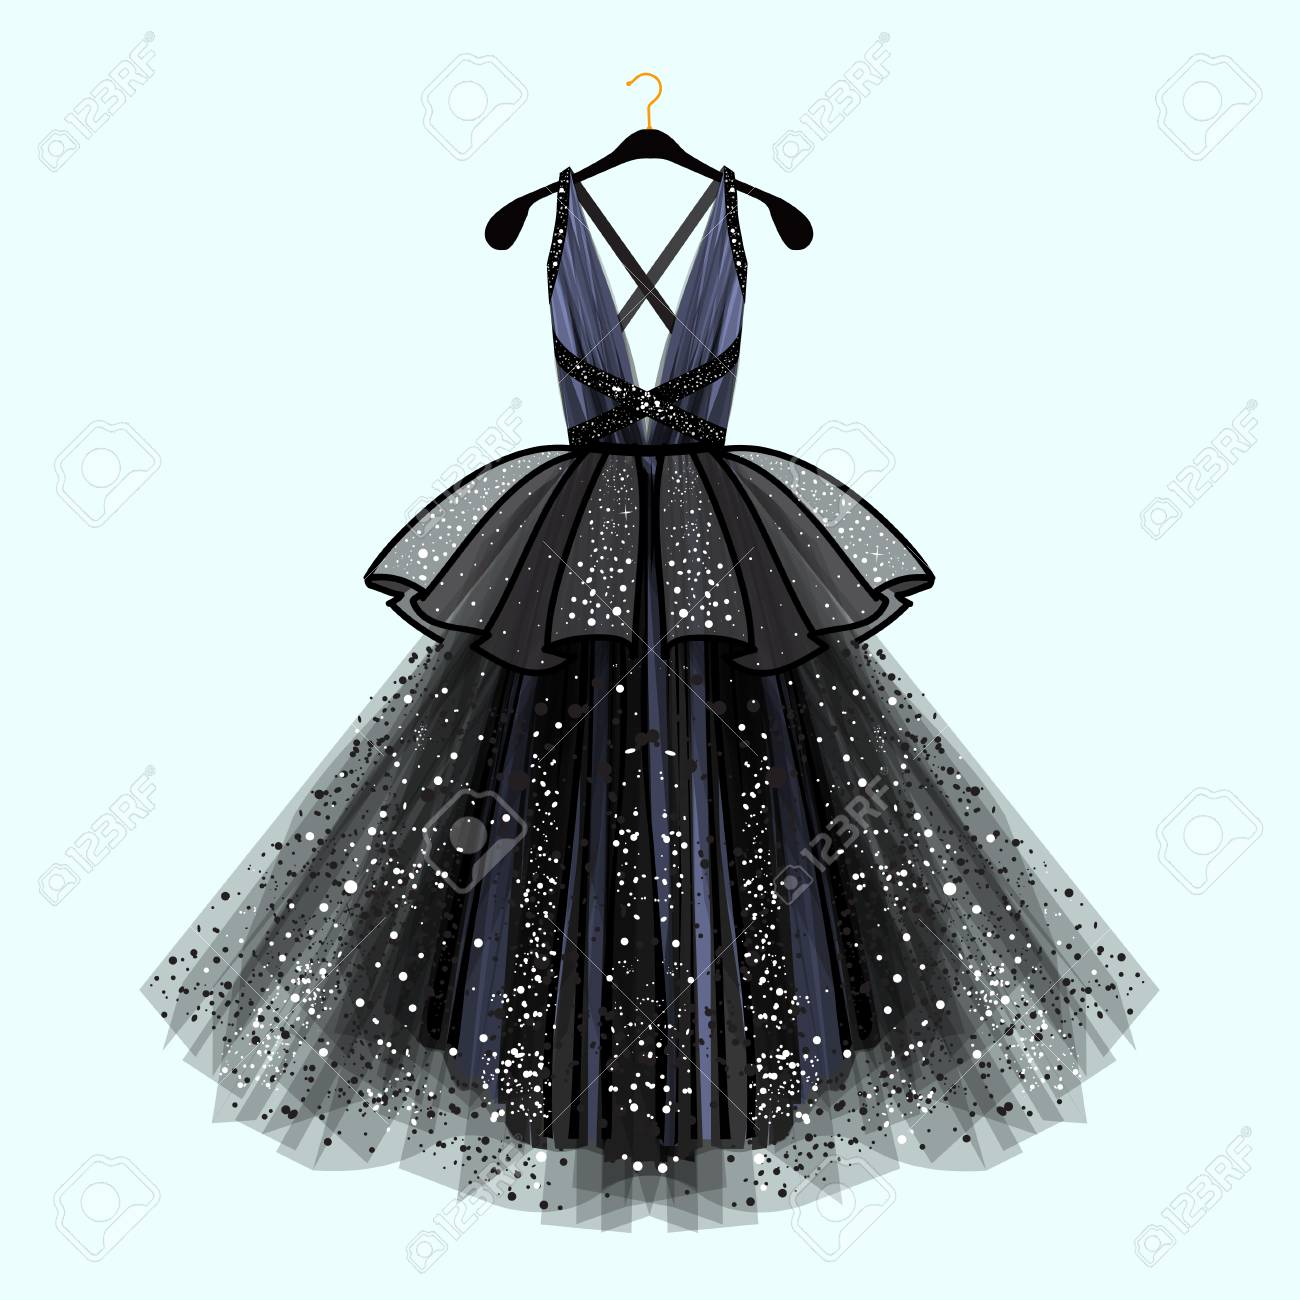 Gorgeous party dress. Party dress with fancy decor.Fashion illustration - 94352982